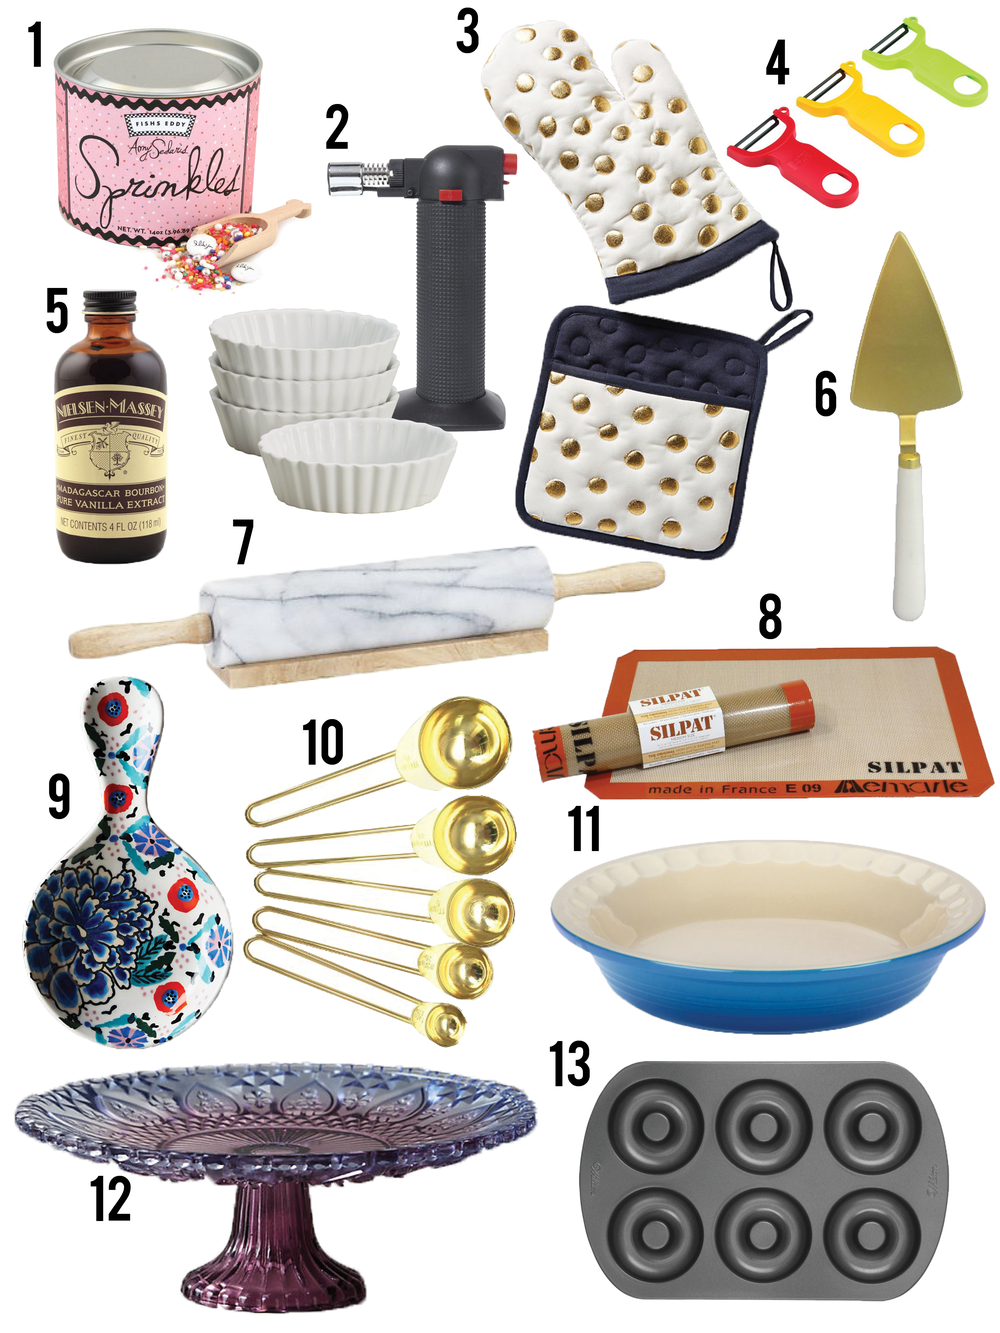 Baking Gift Guide via Unusually Lovely